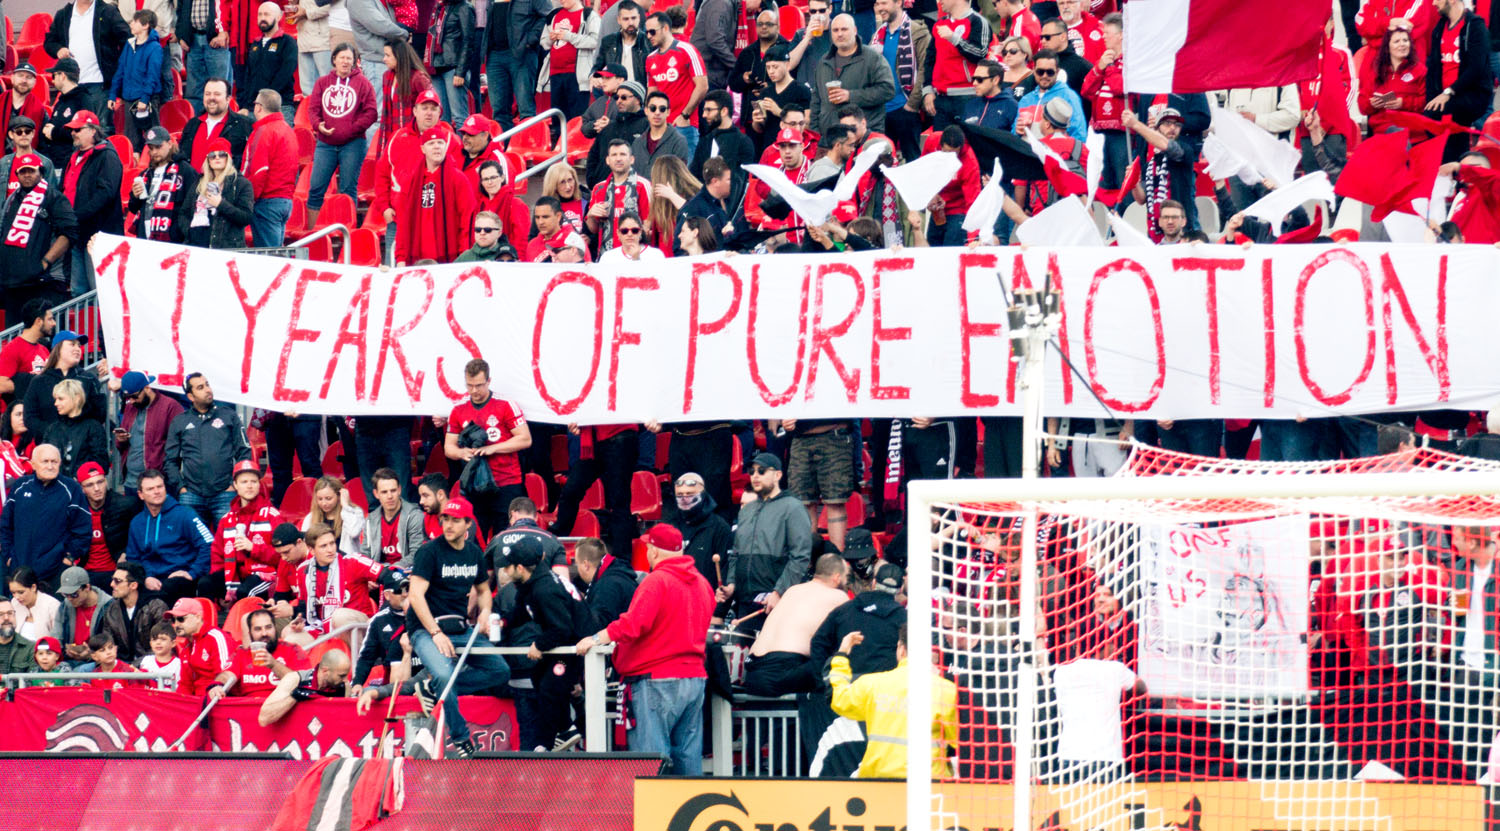 The '11 Years of Pure Emotion' banner is displayed in the South End Supporters Section at BMO Field.Image by Dennis Marciniak of denMAR Media.